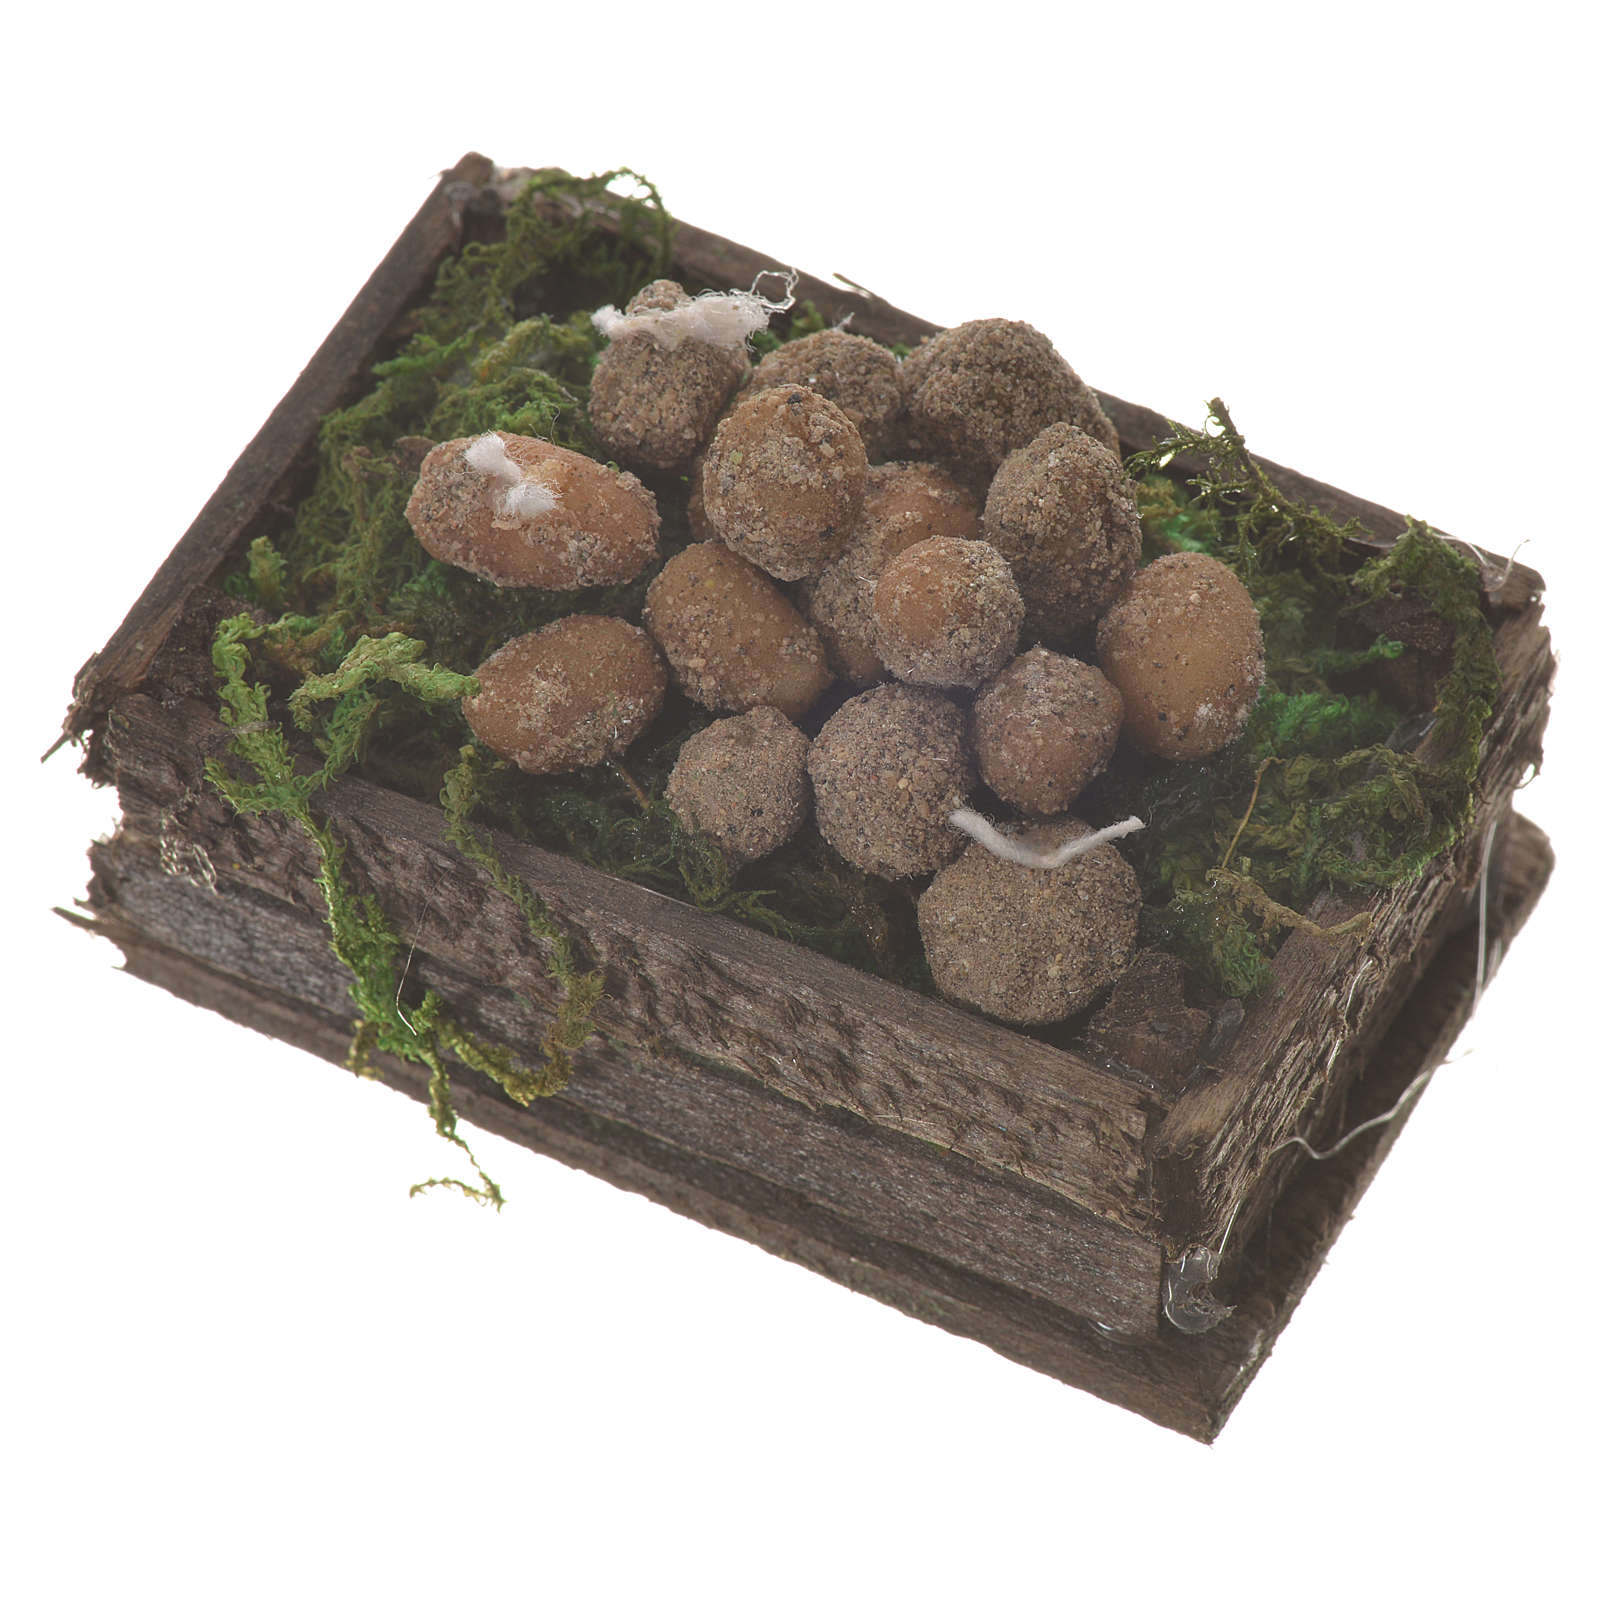 Accessory for nativities of 20-24cm, box with potatoes in wax 4